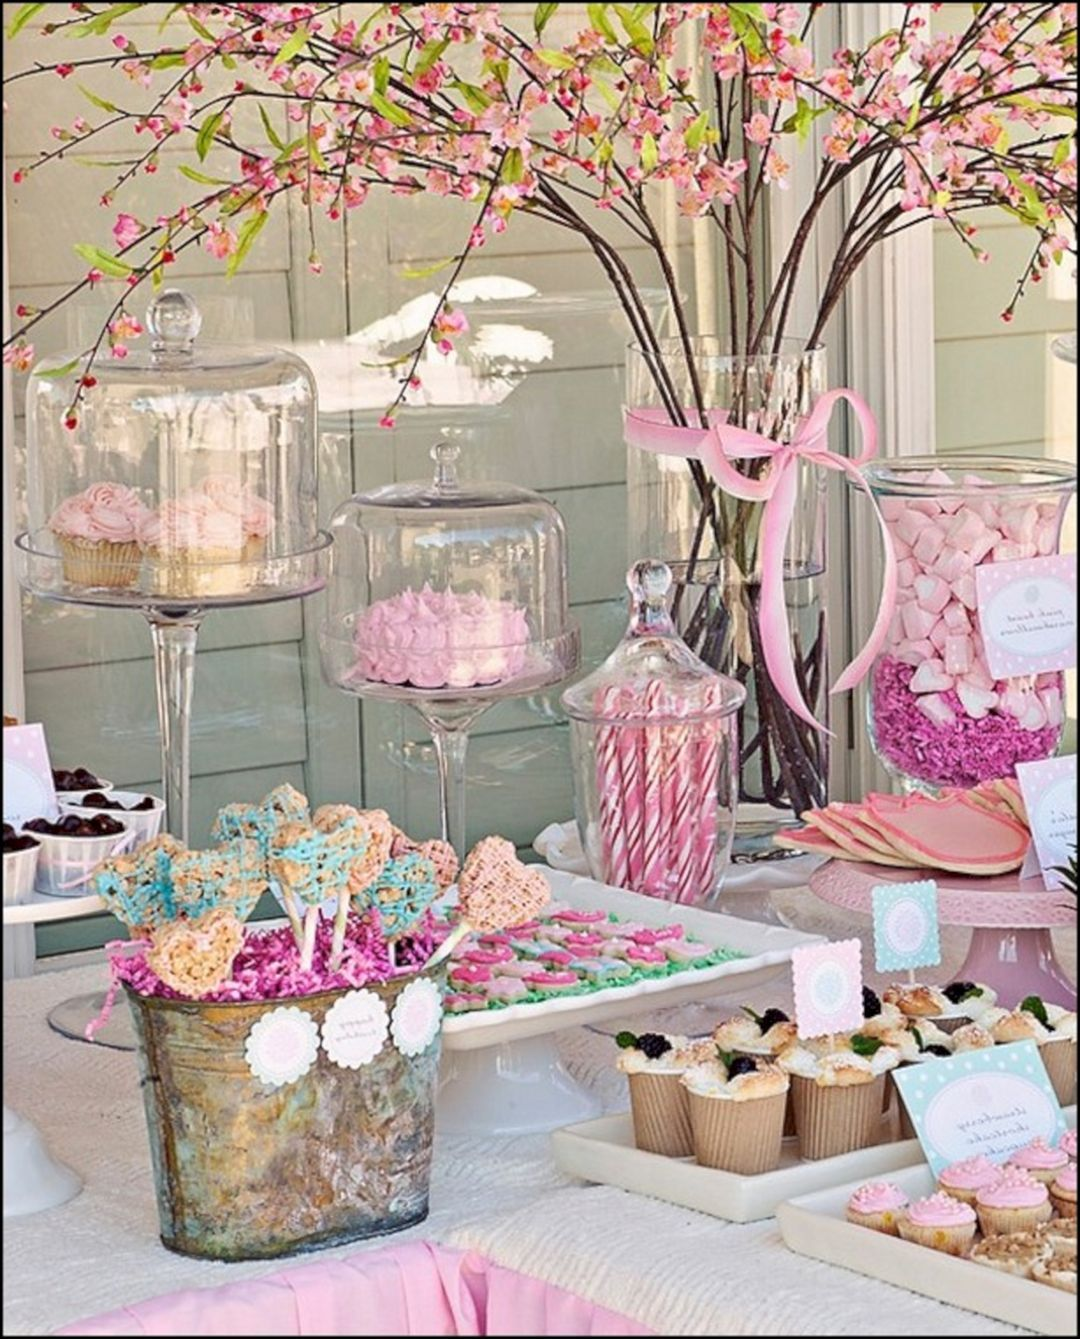 10 Beautiful Spring Decoration Ideas For Easy And Cheap Your Home Decoration Dexorate Garden Party Birthday Candy Bar Wedding 60th Birthday Party Decorations